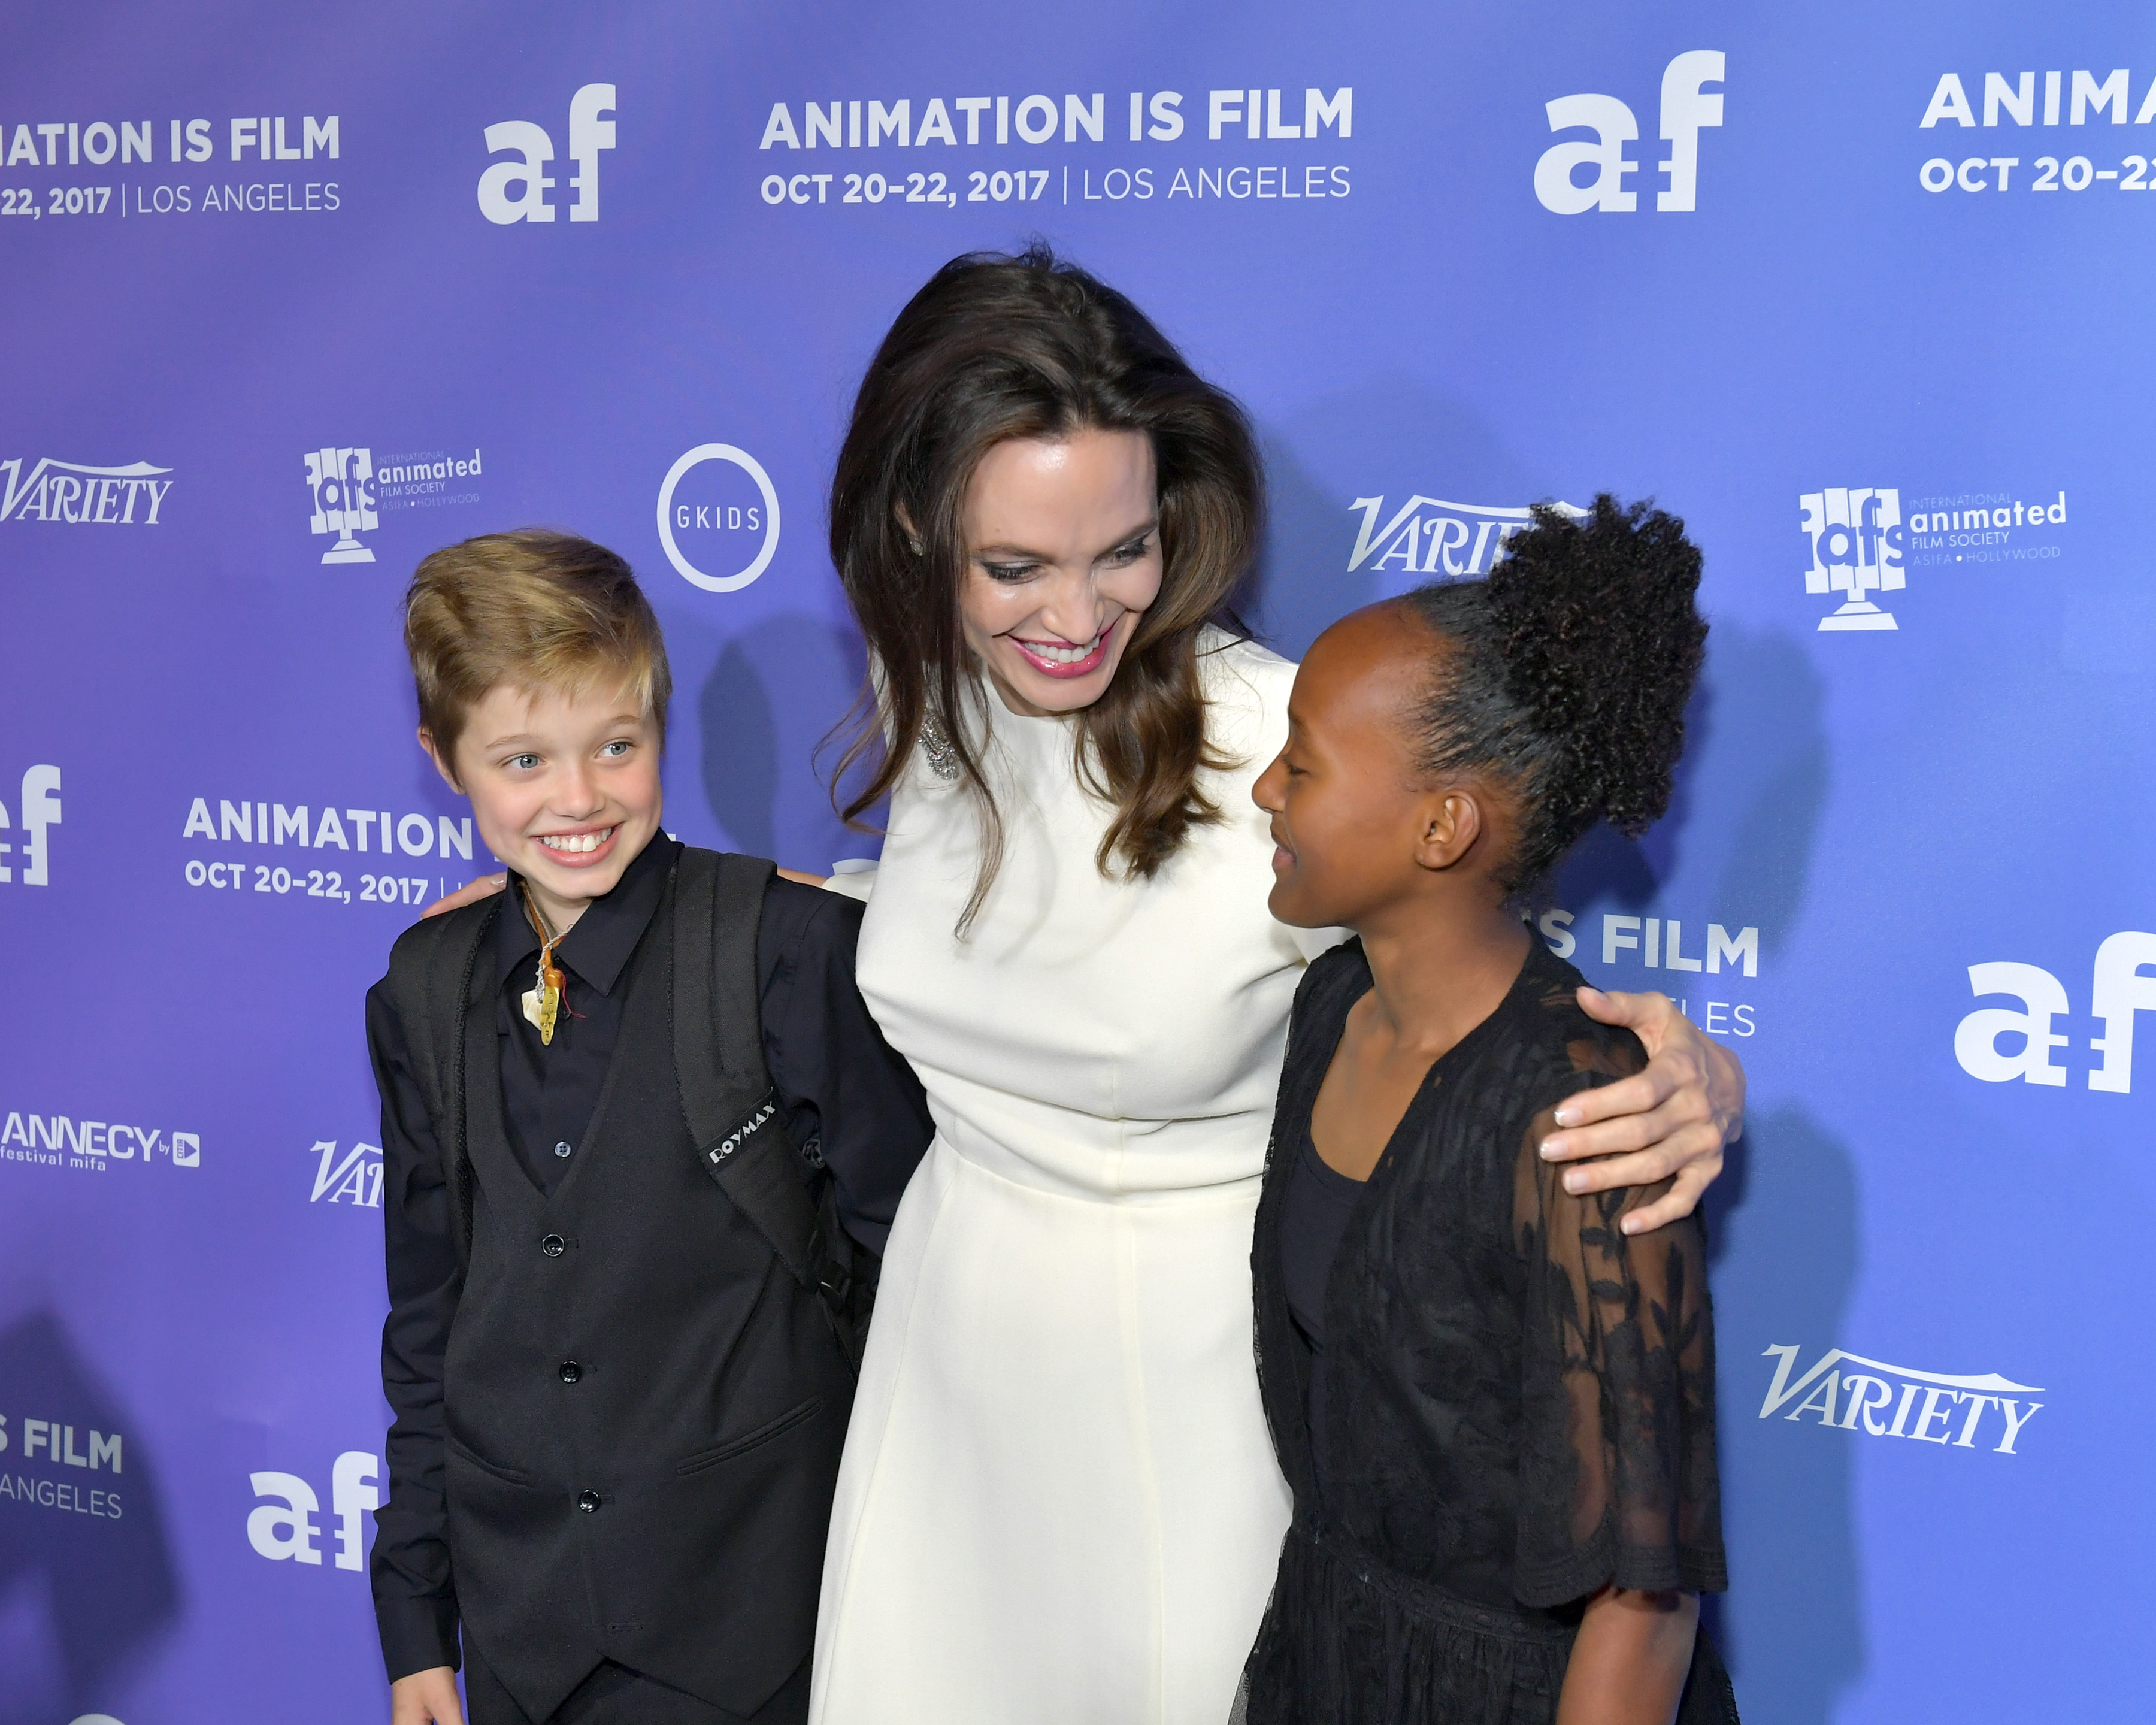 Angelina-Jolie-Is-All-Smiles-On-The-Red-Carpet-With-Daughters-Shiloh-Zahara